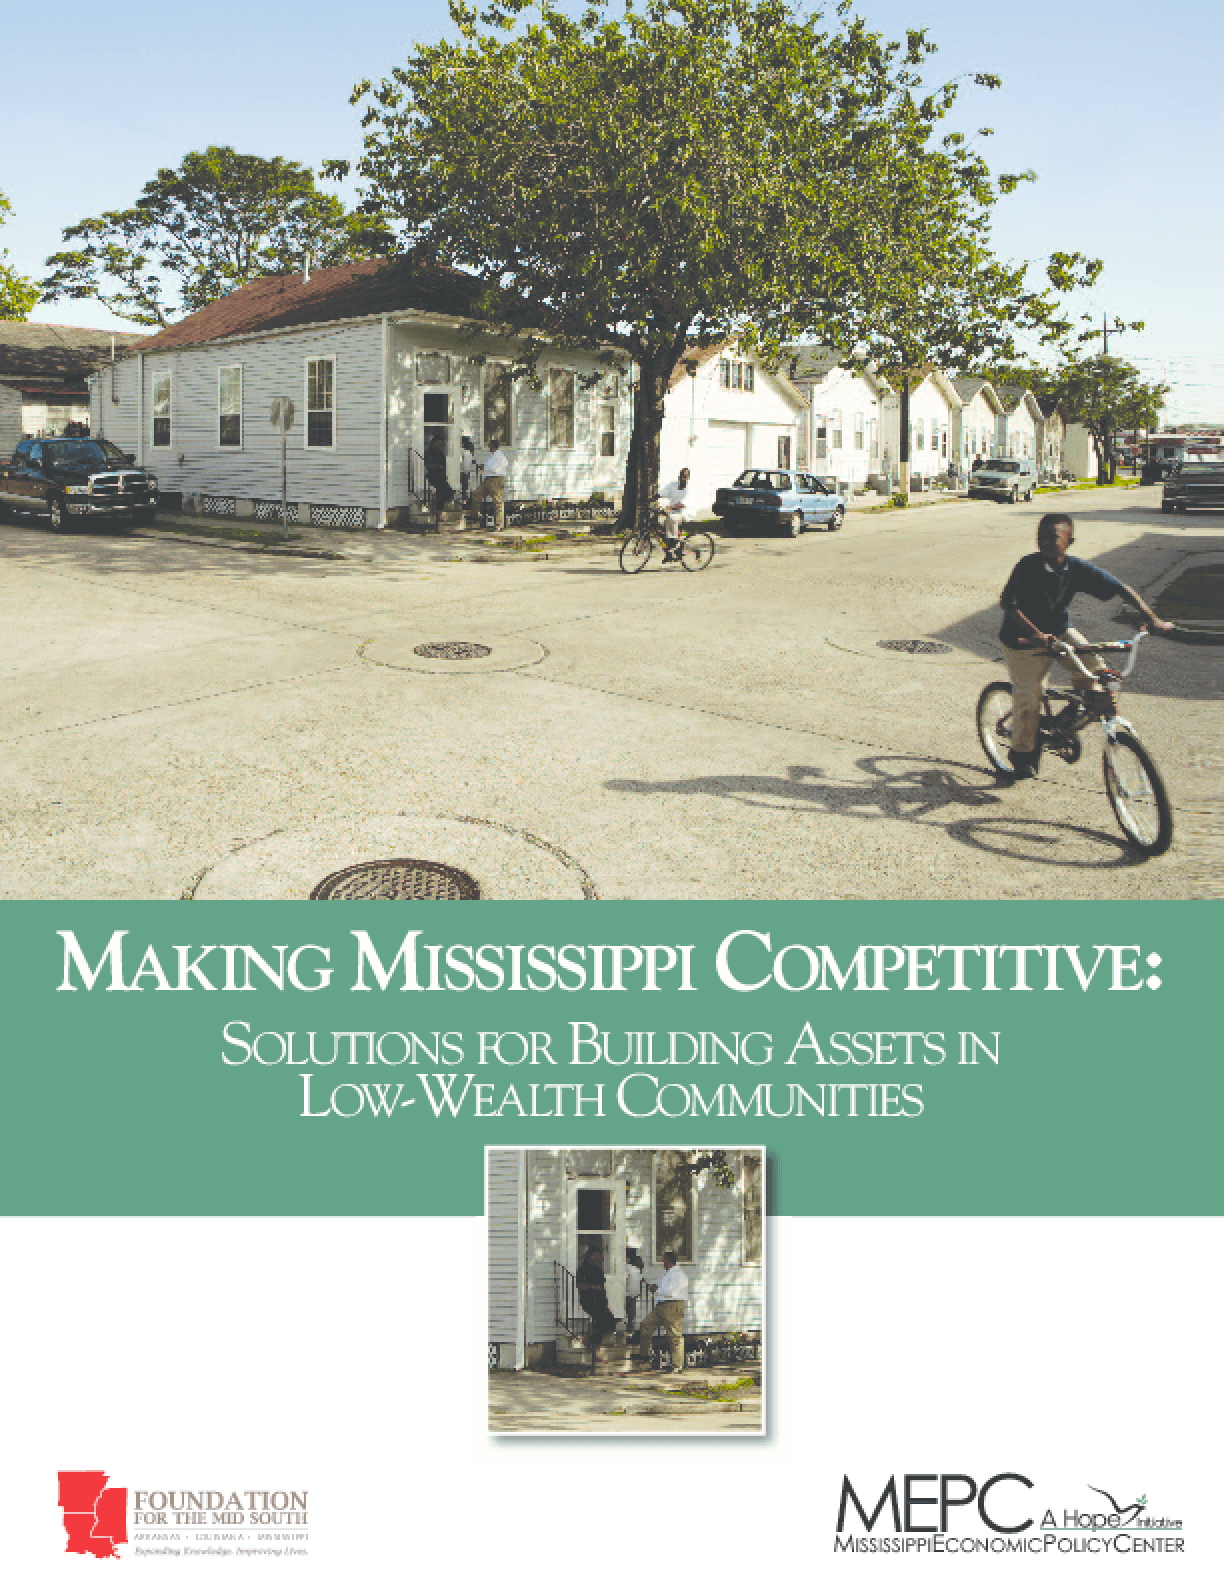 Making Mississippi Competitive: Solutions for Building Assets in Low-Wealth Communities